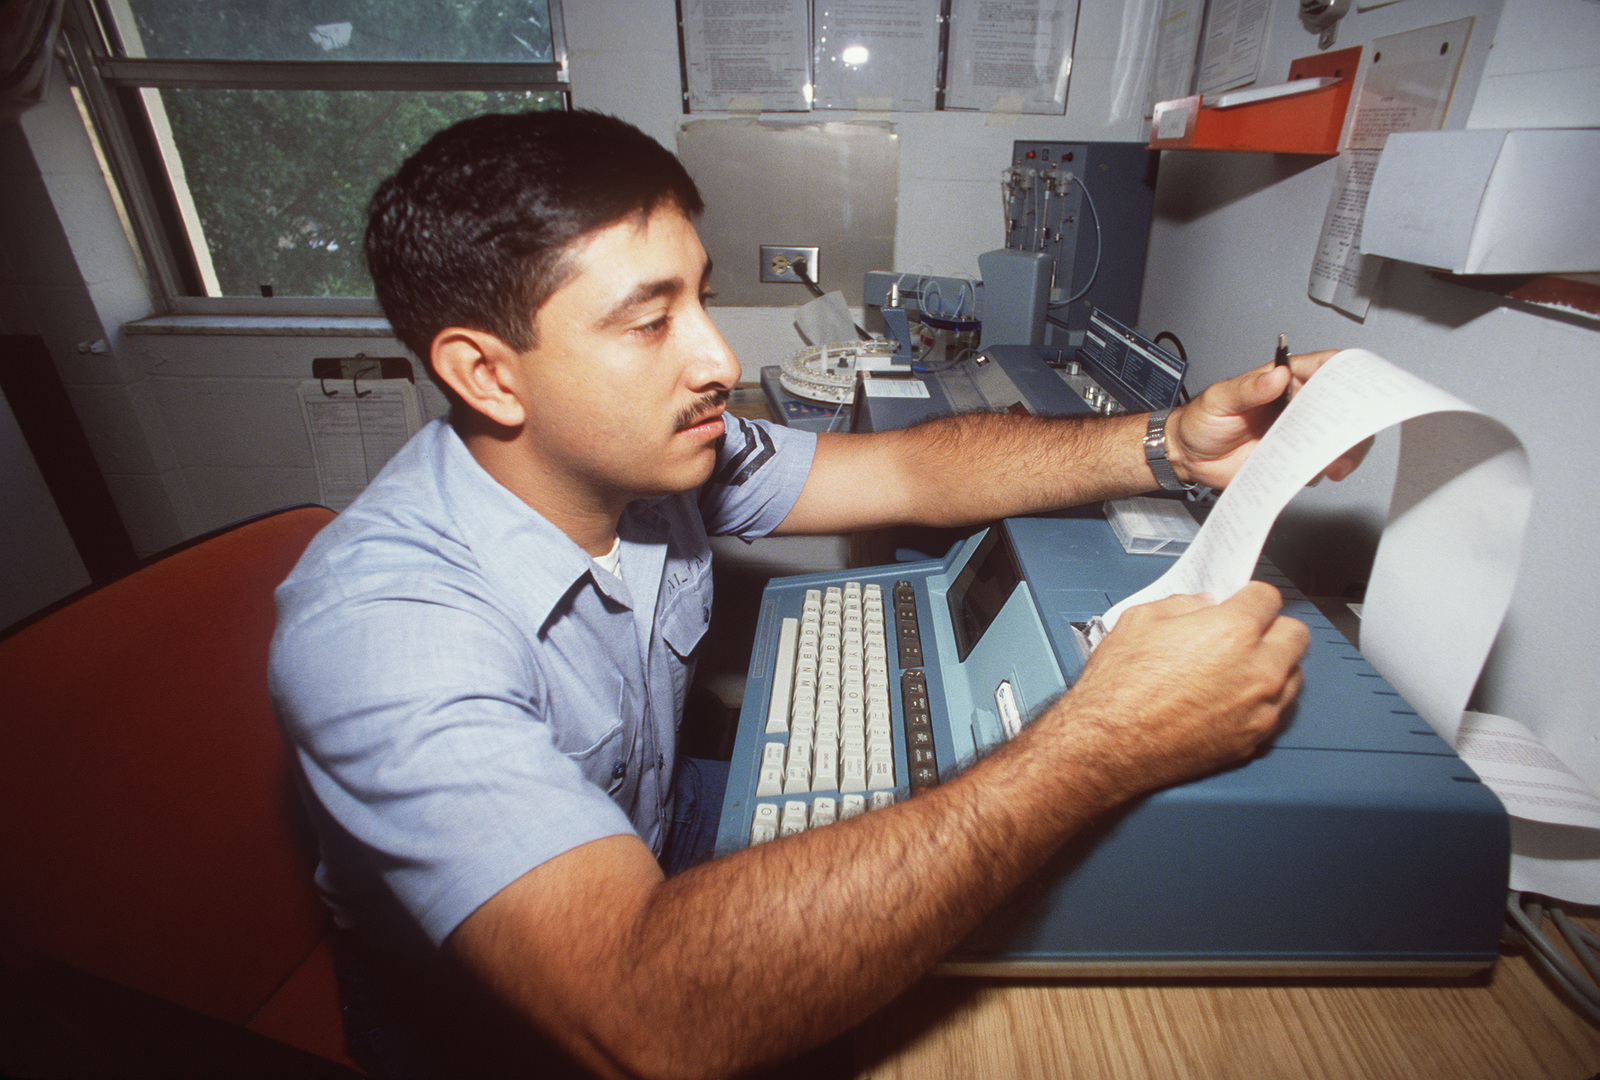 A technician examines a printout of results from the testing of urine samples for the presence of THC, cocaine, PCP, opiates, and amphetamines, in the Department of Defense's program to screen job applicants and some employees for use of illegal drugs